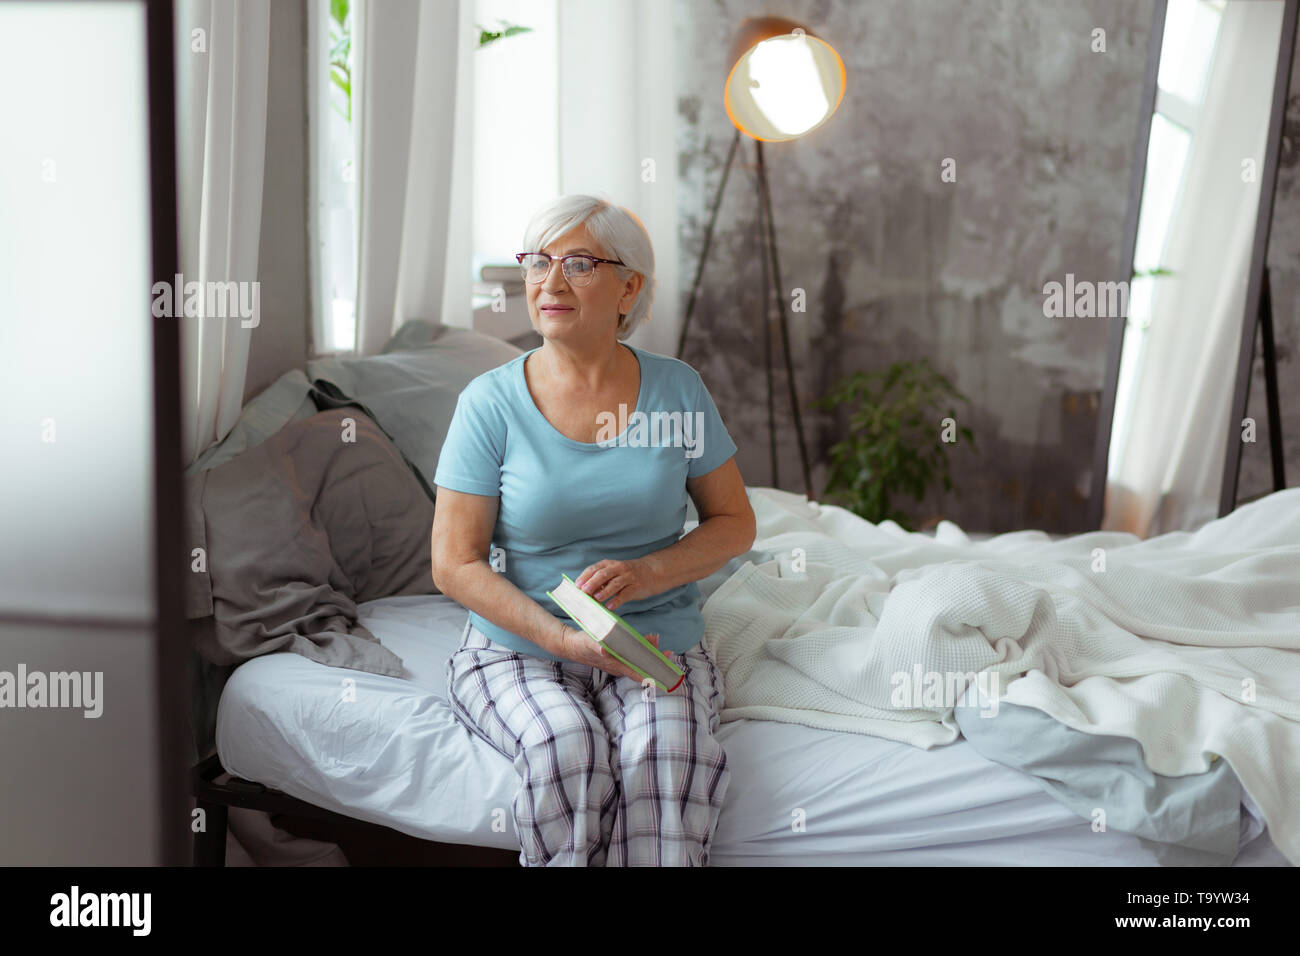 Beautiful woman preparing to open book while sitting on bed. - Stock Image